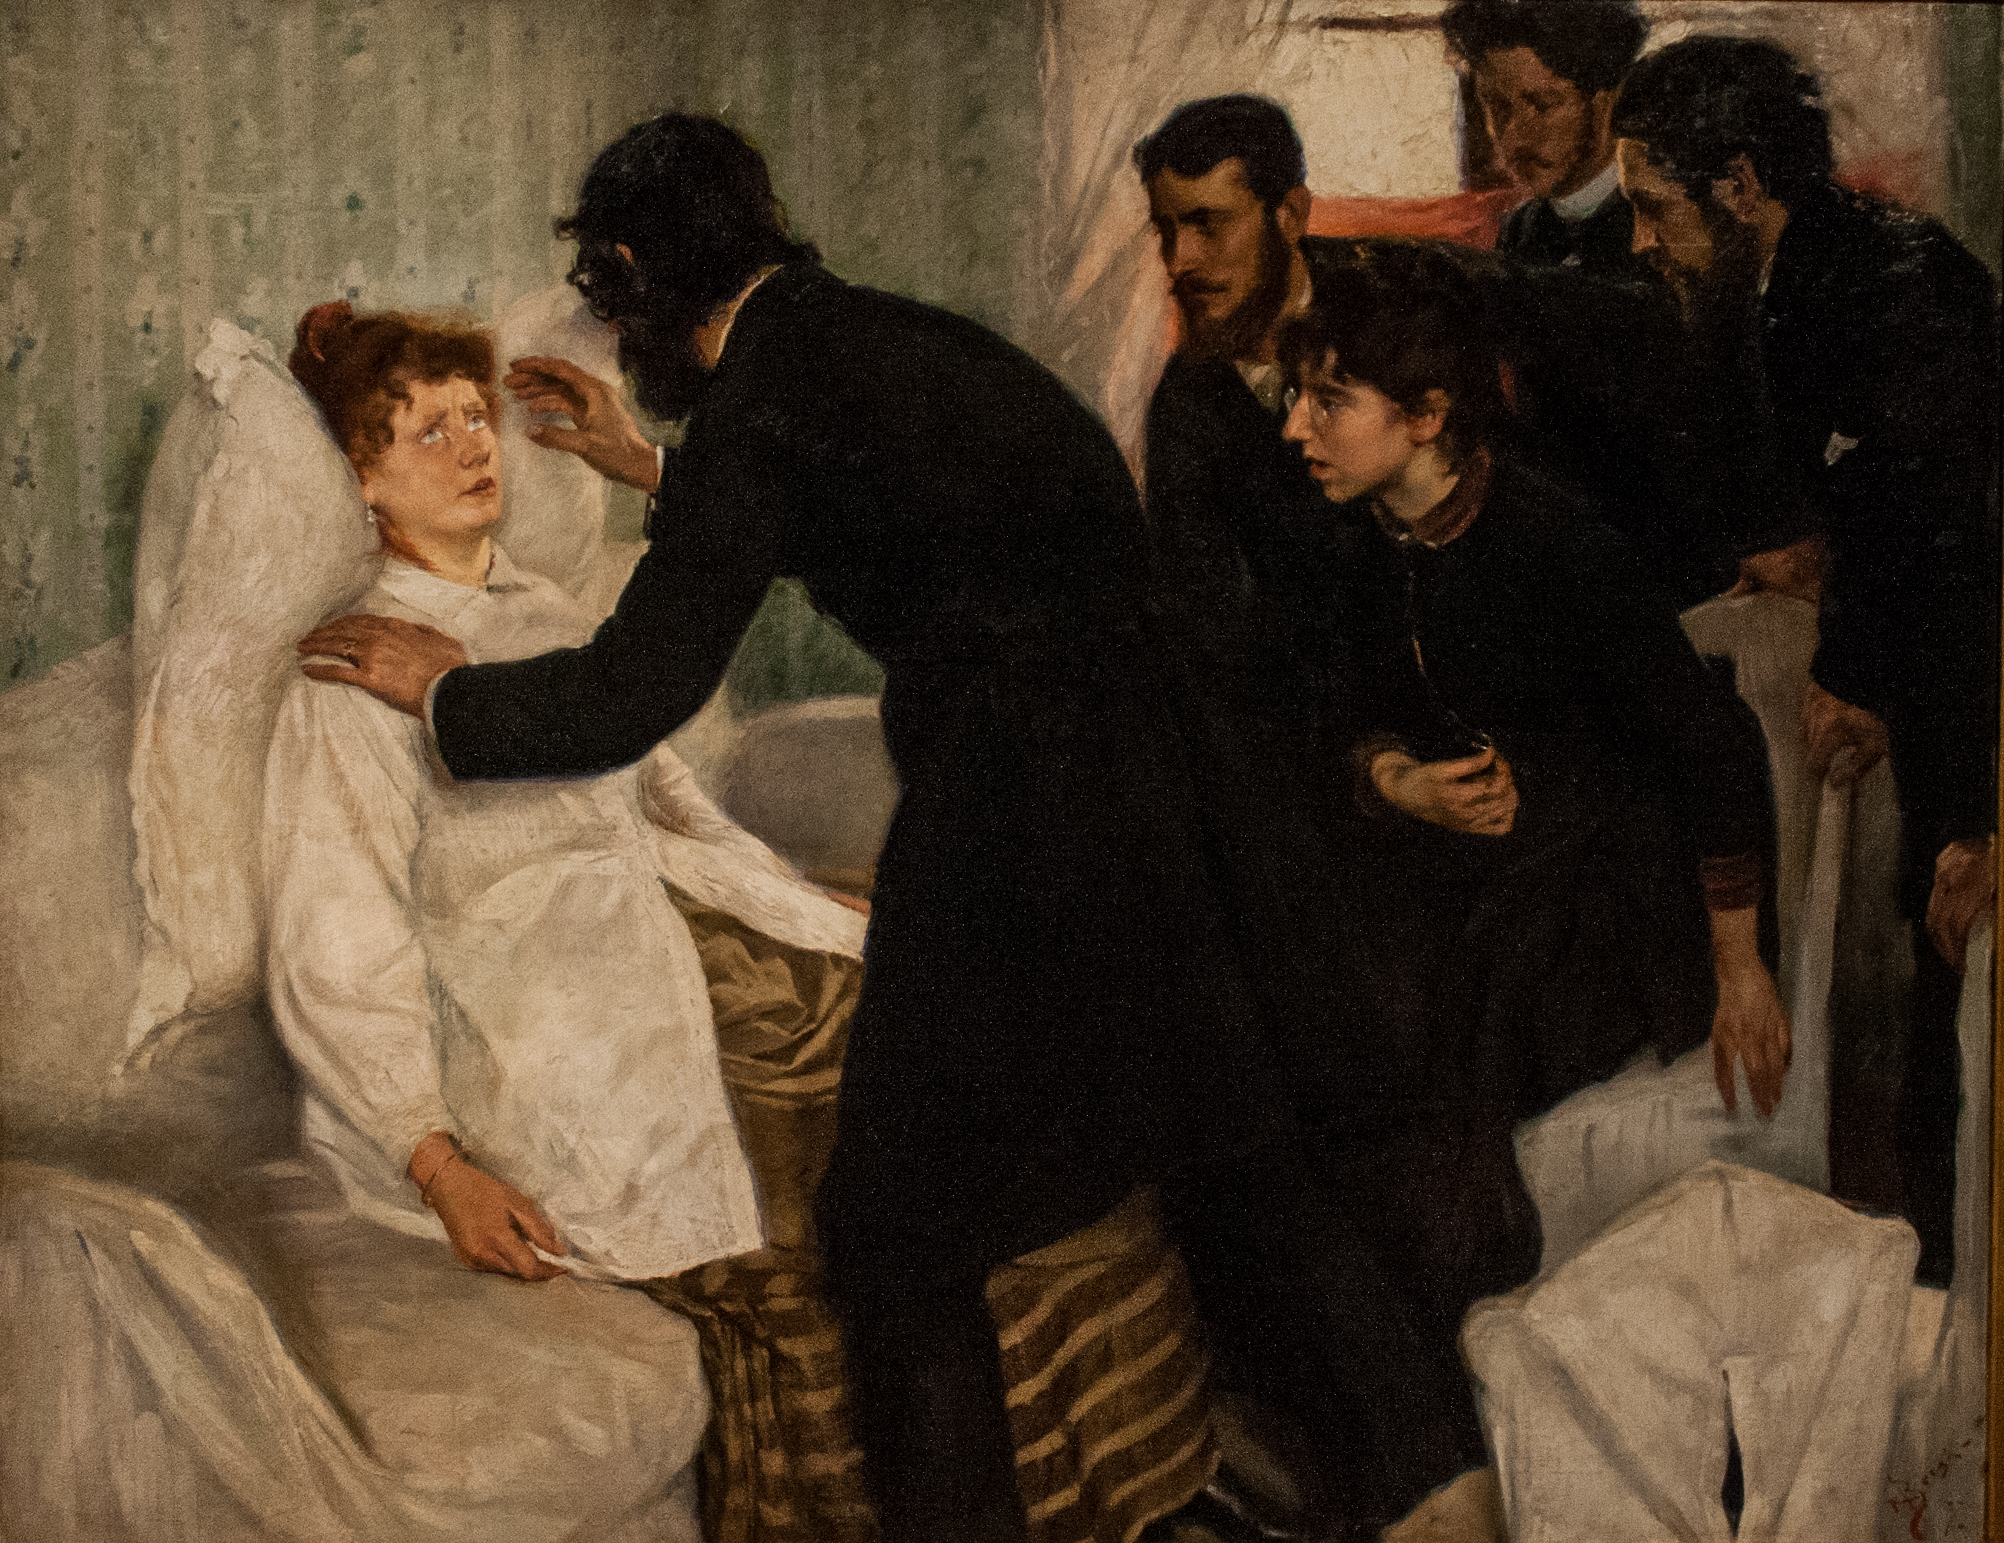 Painting shows a man in dark clothing (facing away from us), leaning over a woman in a white jacket and striped dress. He has one hand on her shoulder and is holding the other before her face; her eyes are rolled up and she is lying against a pillow. Several men and boys in dark clothes look on. Hypnotic Séance by Richard Bergh in the Nationalmuseum, Stockholm. 1887. Public Domain.